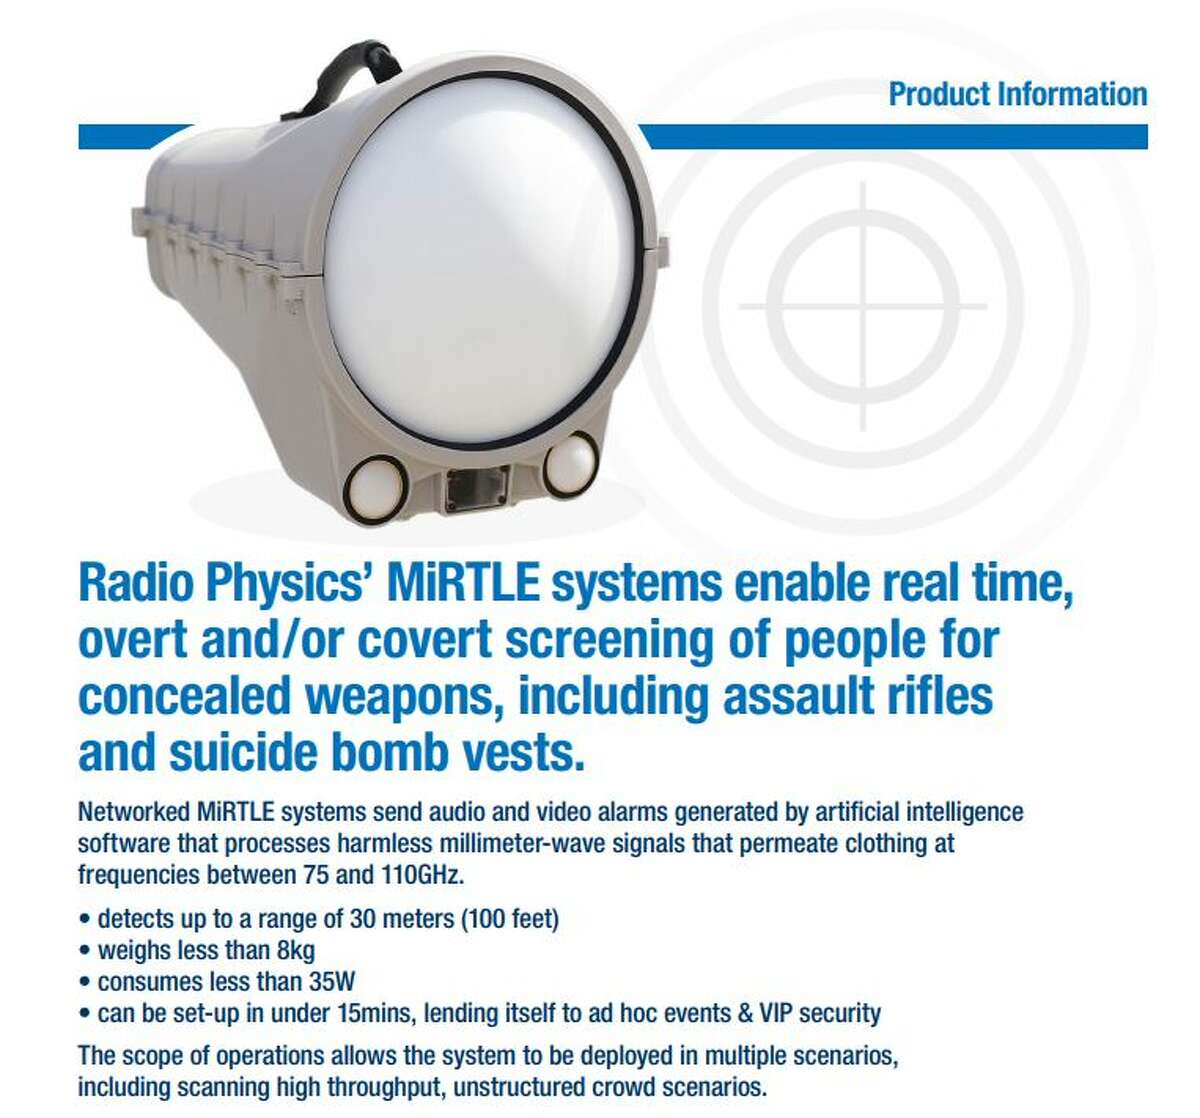 A portion of a Radio Physics Solutions brochure describing the MiRTLE system.